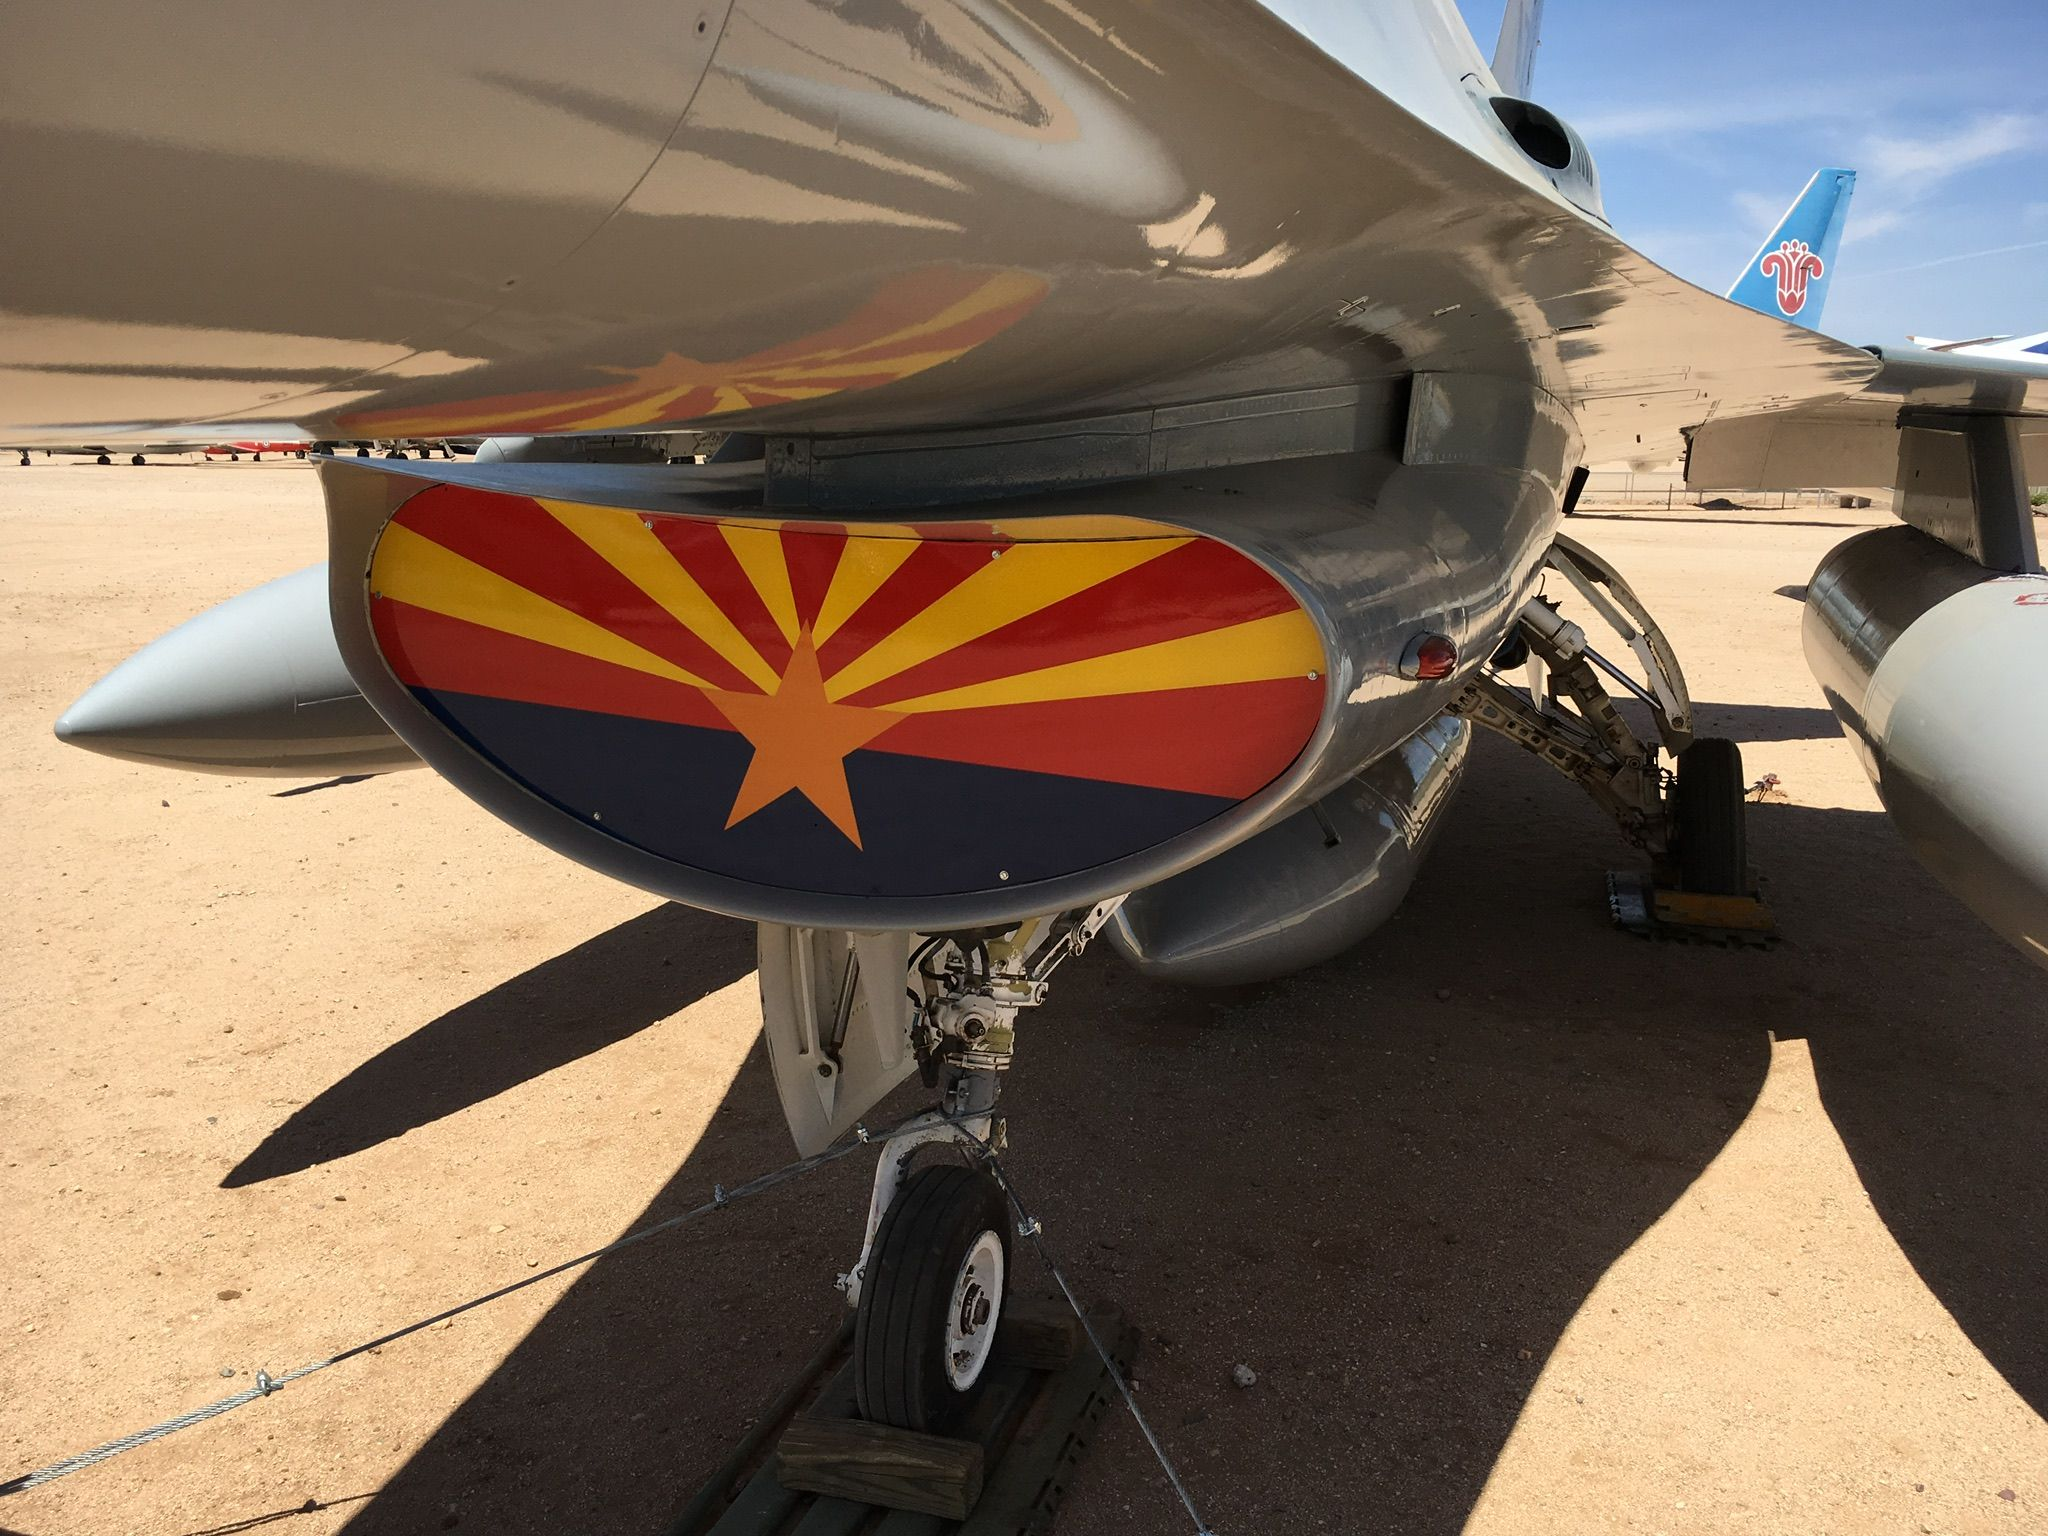 Arizona ANG F16A. Photo Paul Woodford Space museum